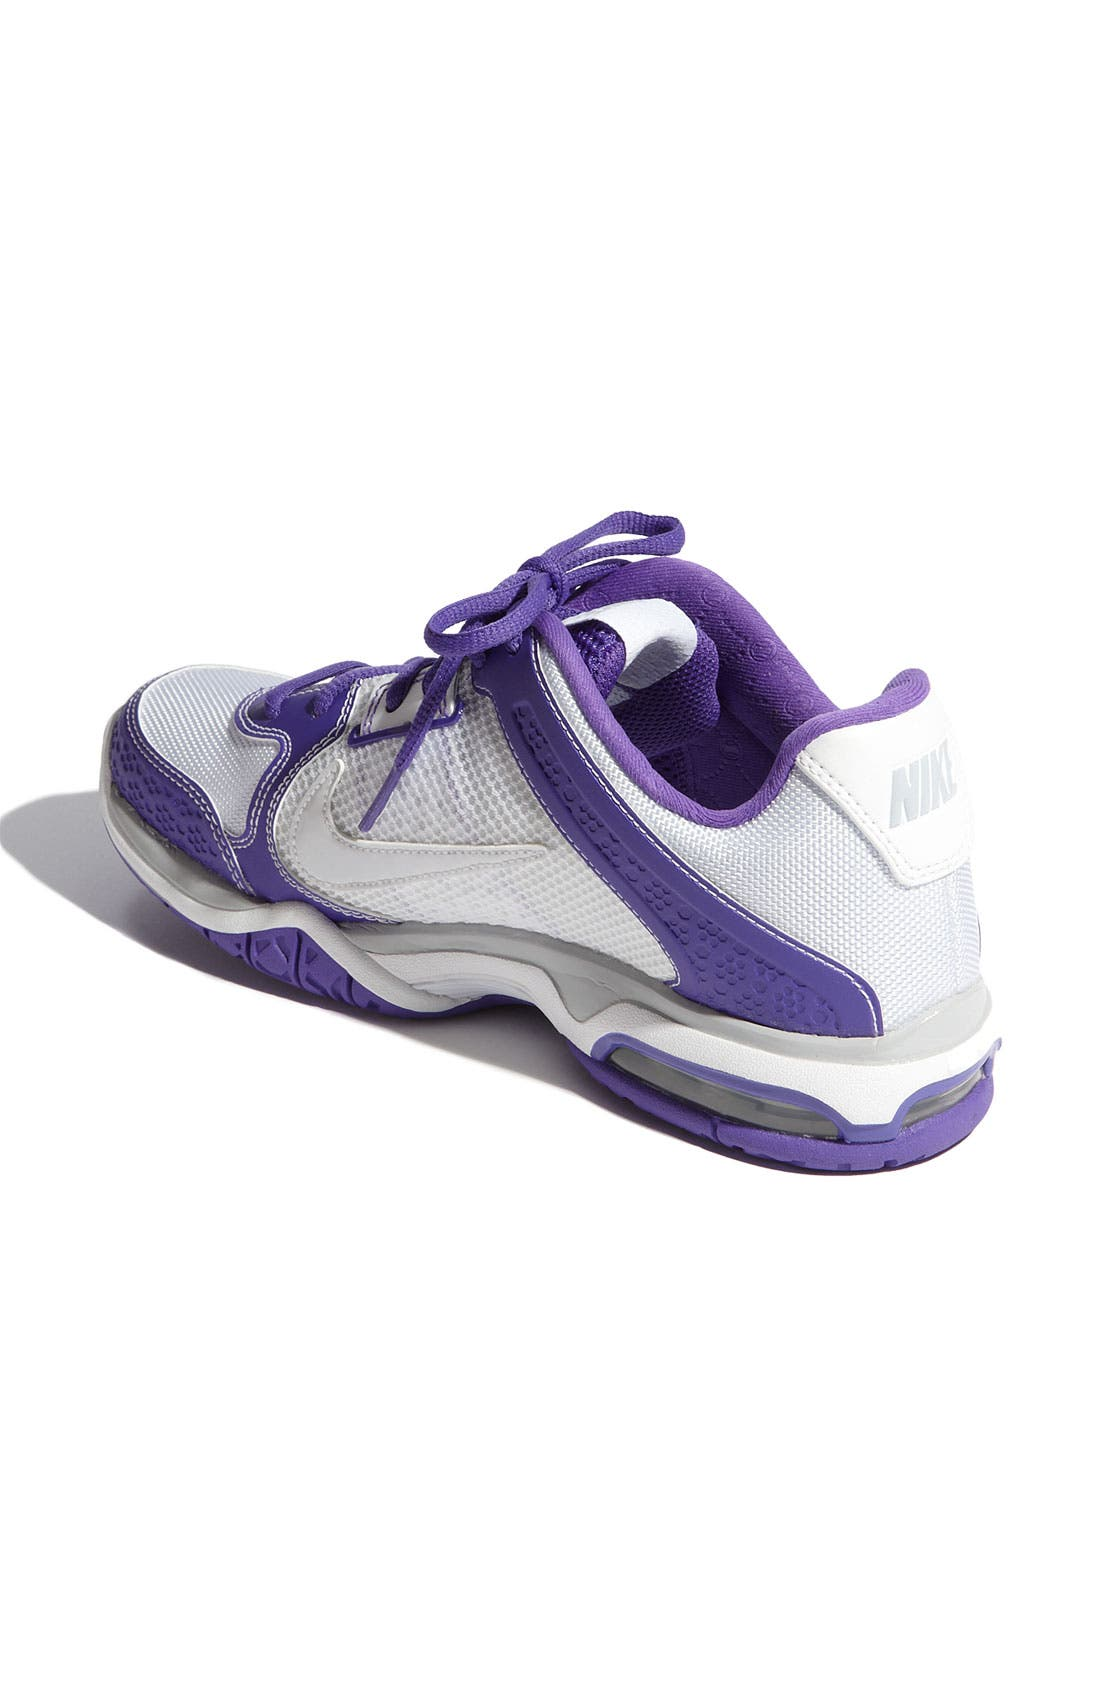 Alternate Image 2  - Nike 'Air Max Mirabella 3' Tennis Shoe (Women)